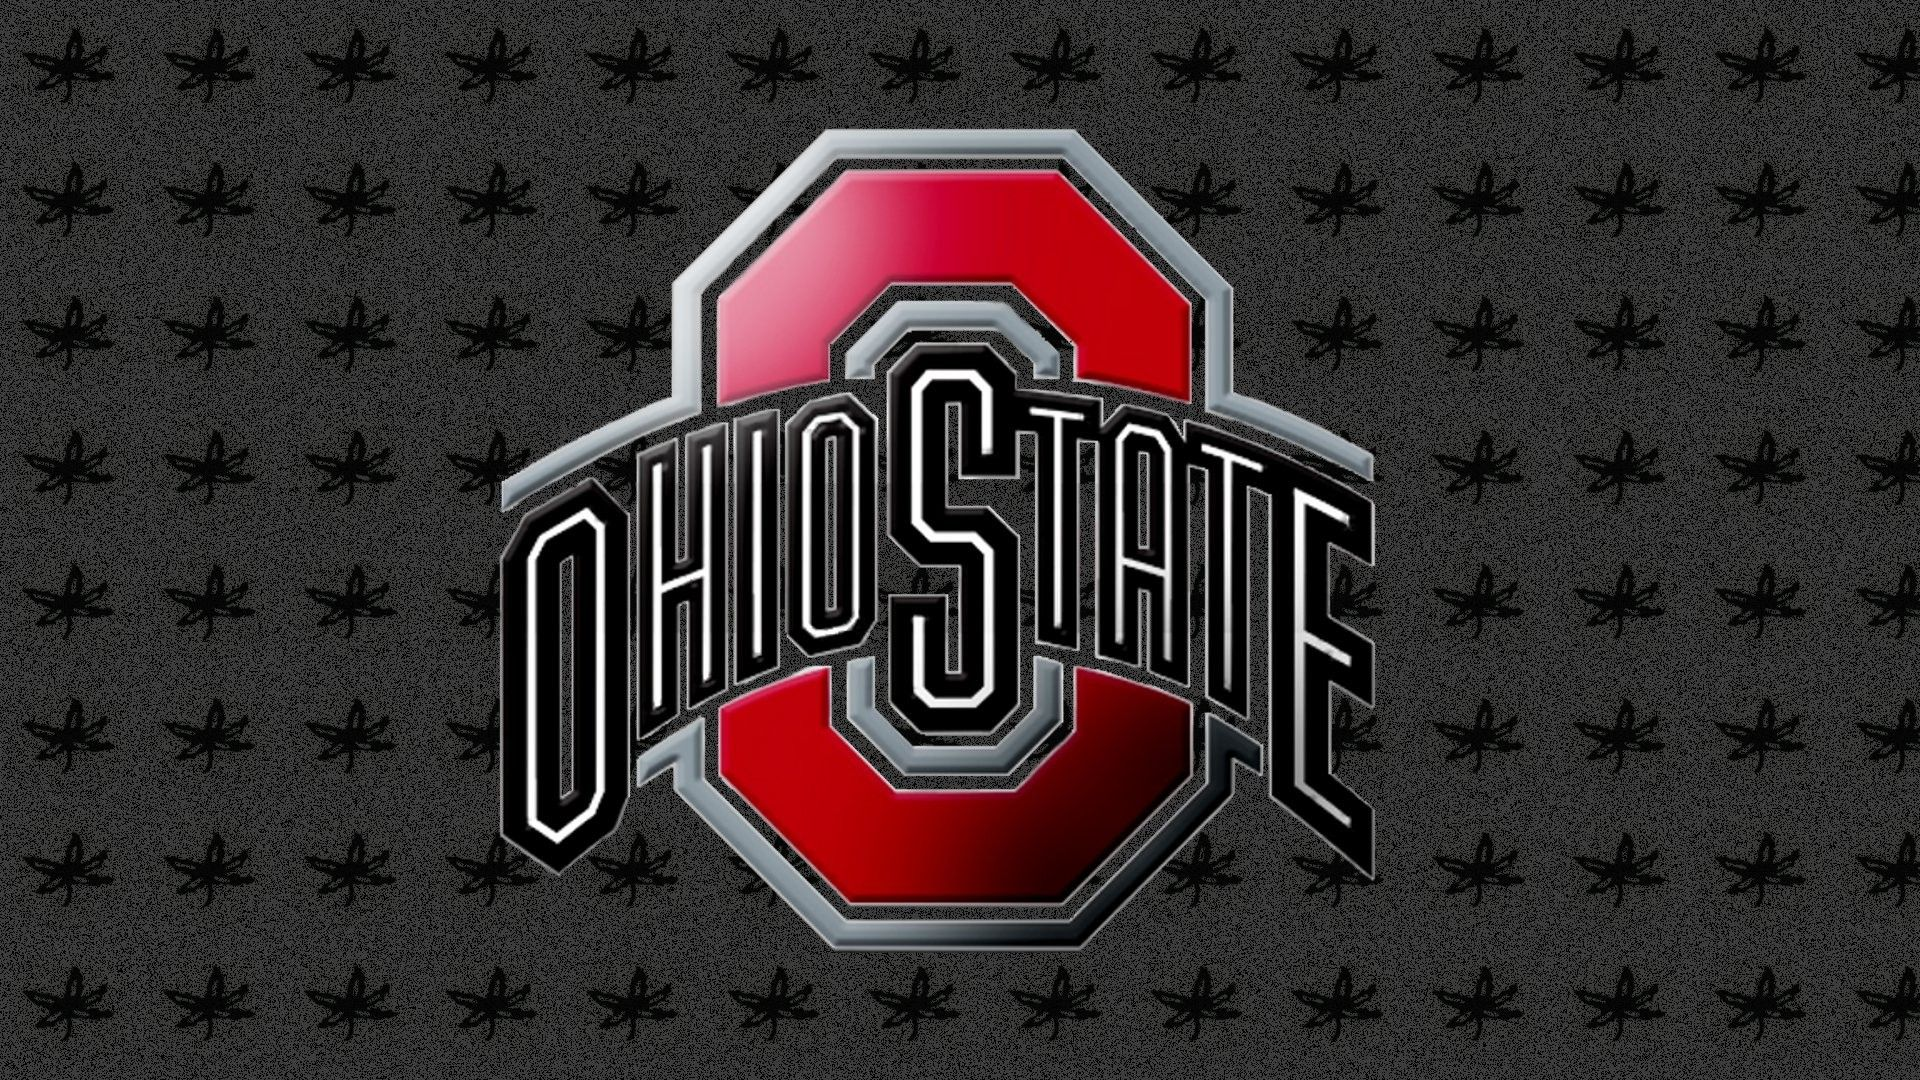 Live Wallpaper Hd Ohio State Wallpaper Ohio State Buckeyes Football Ohio State Logo